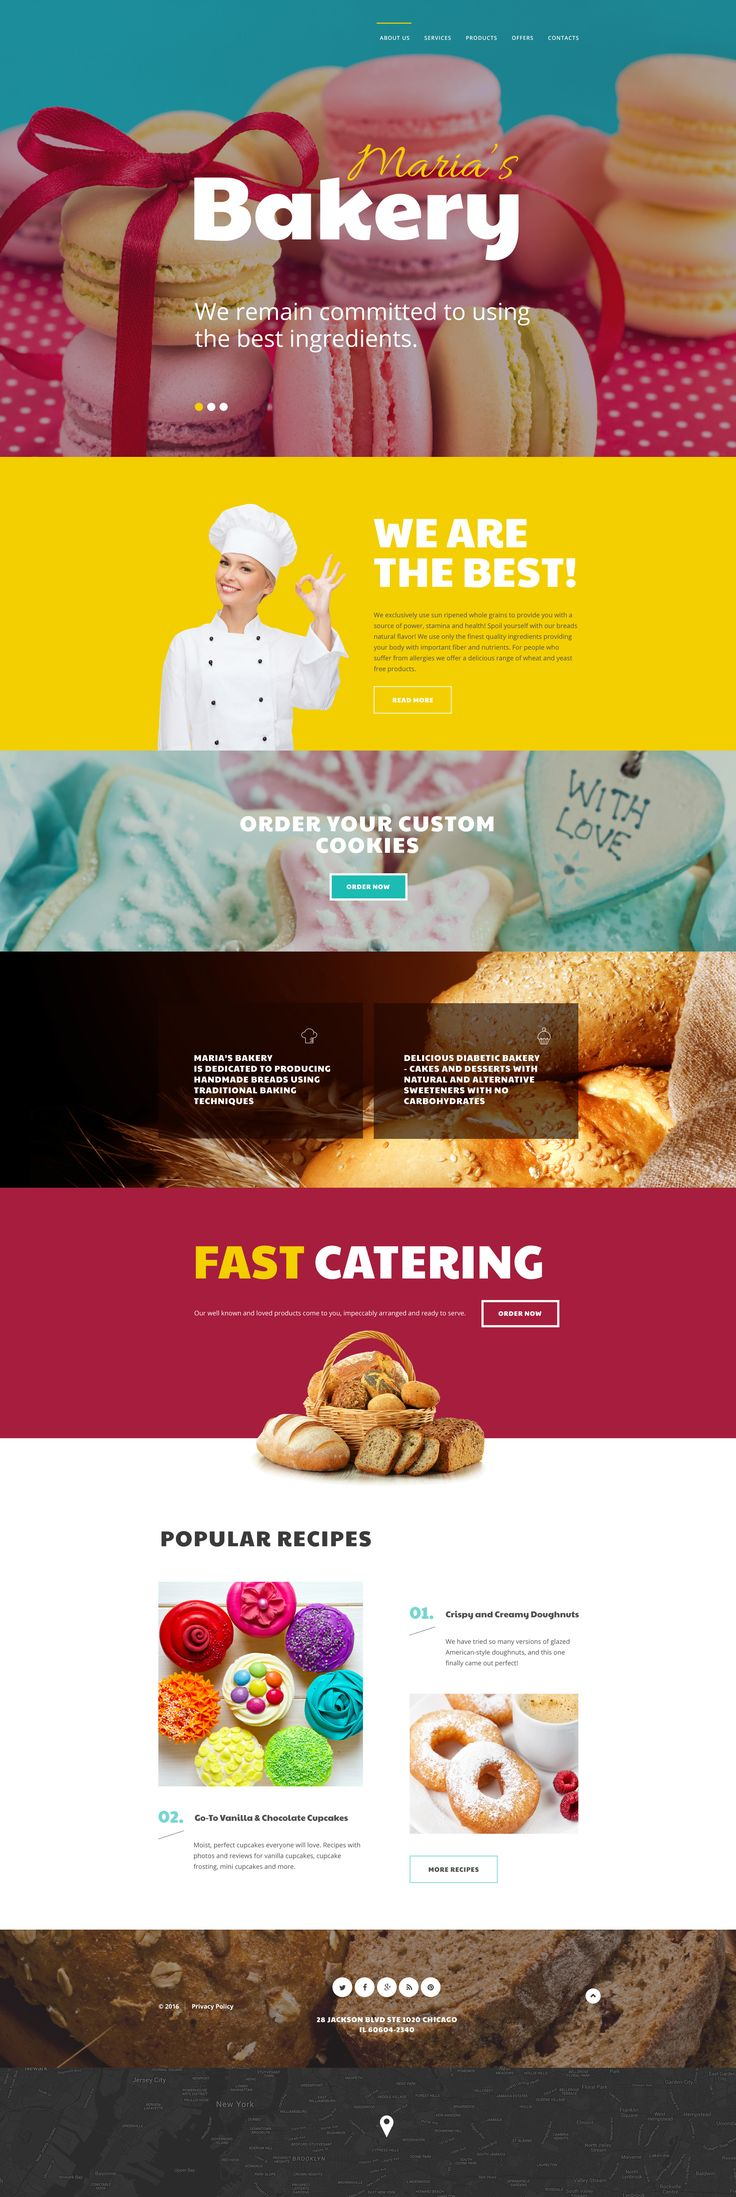 Bakery WebSite Template http://www.templatemonster.com/website-templates/maria-s-bakery-website-template-58701.html